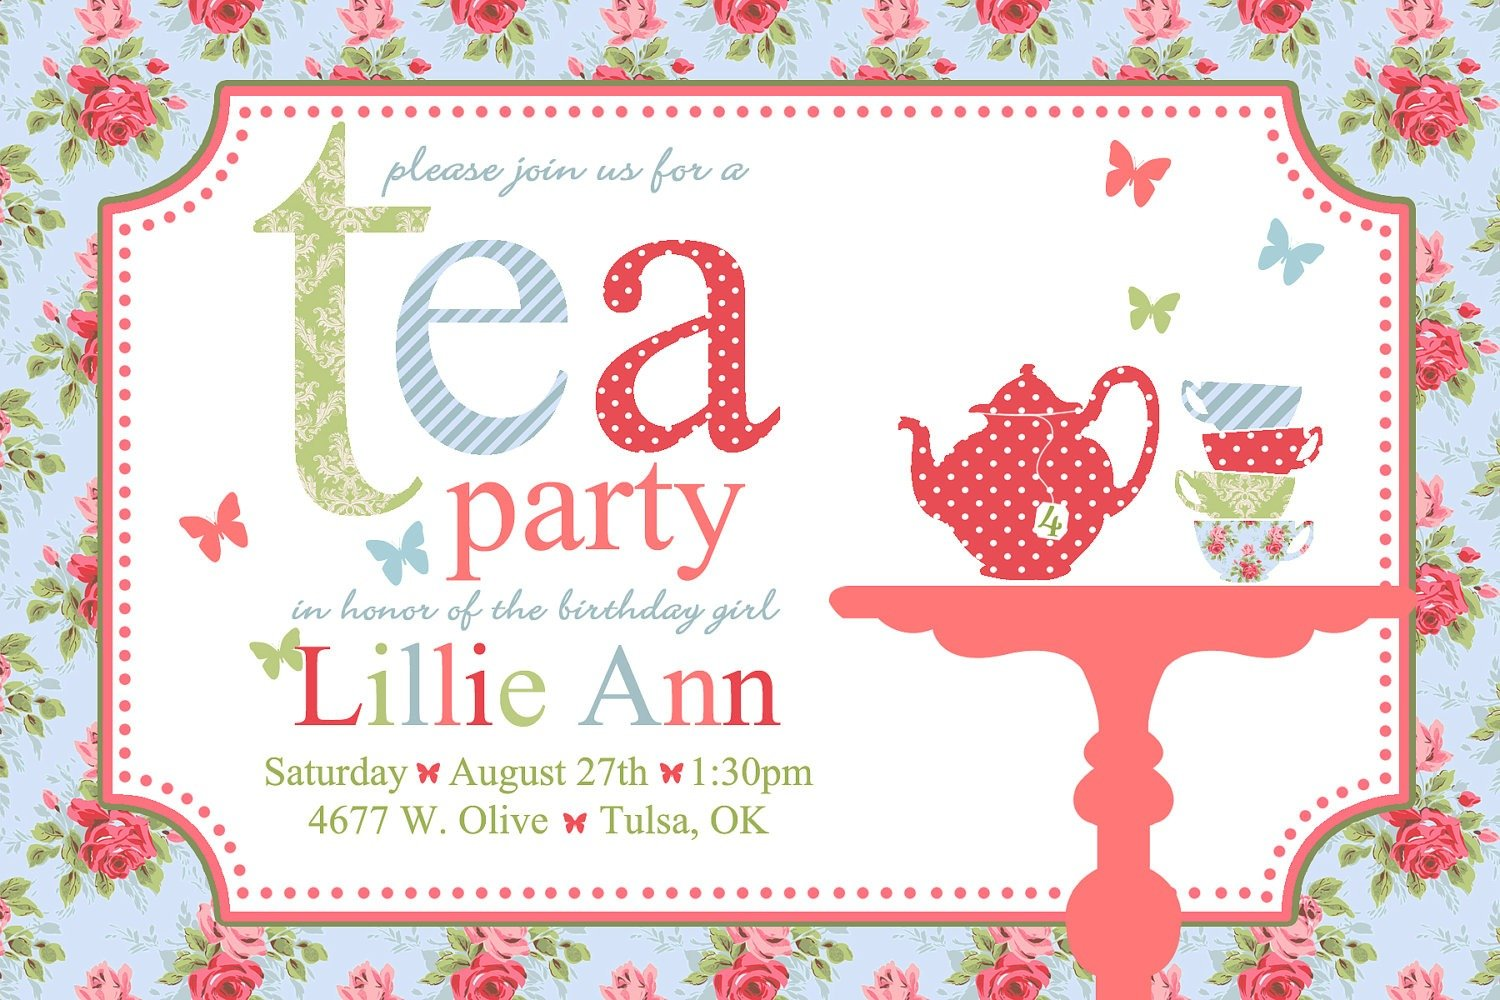 Spring Party Invitation Templates Free Victorian High Tea Party